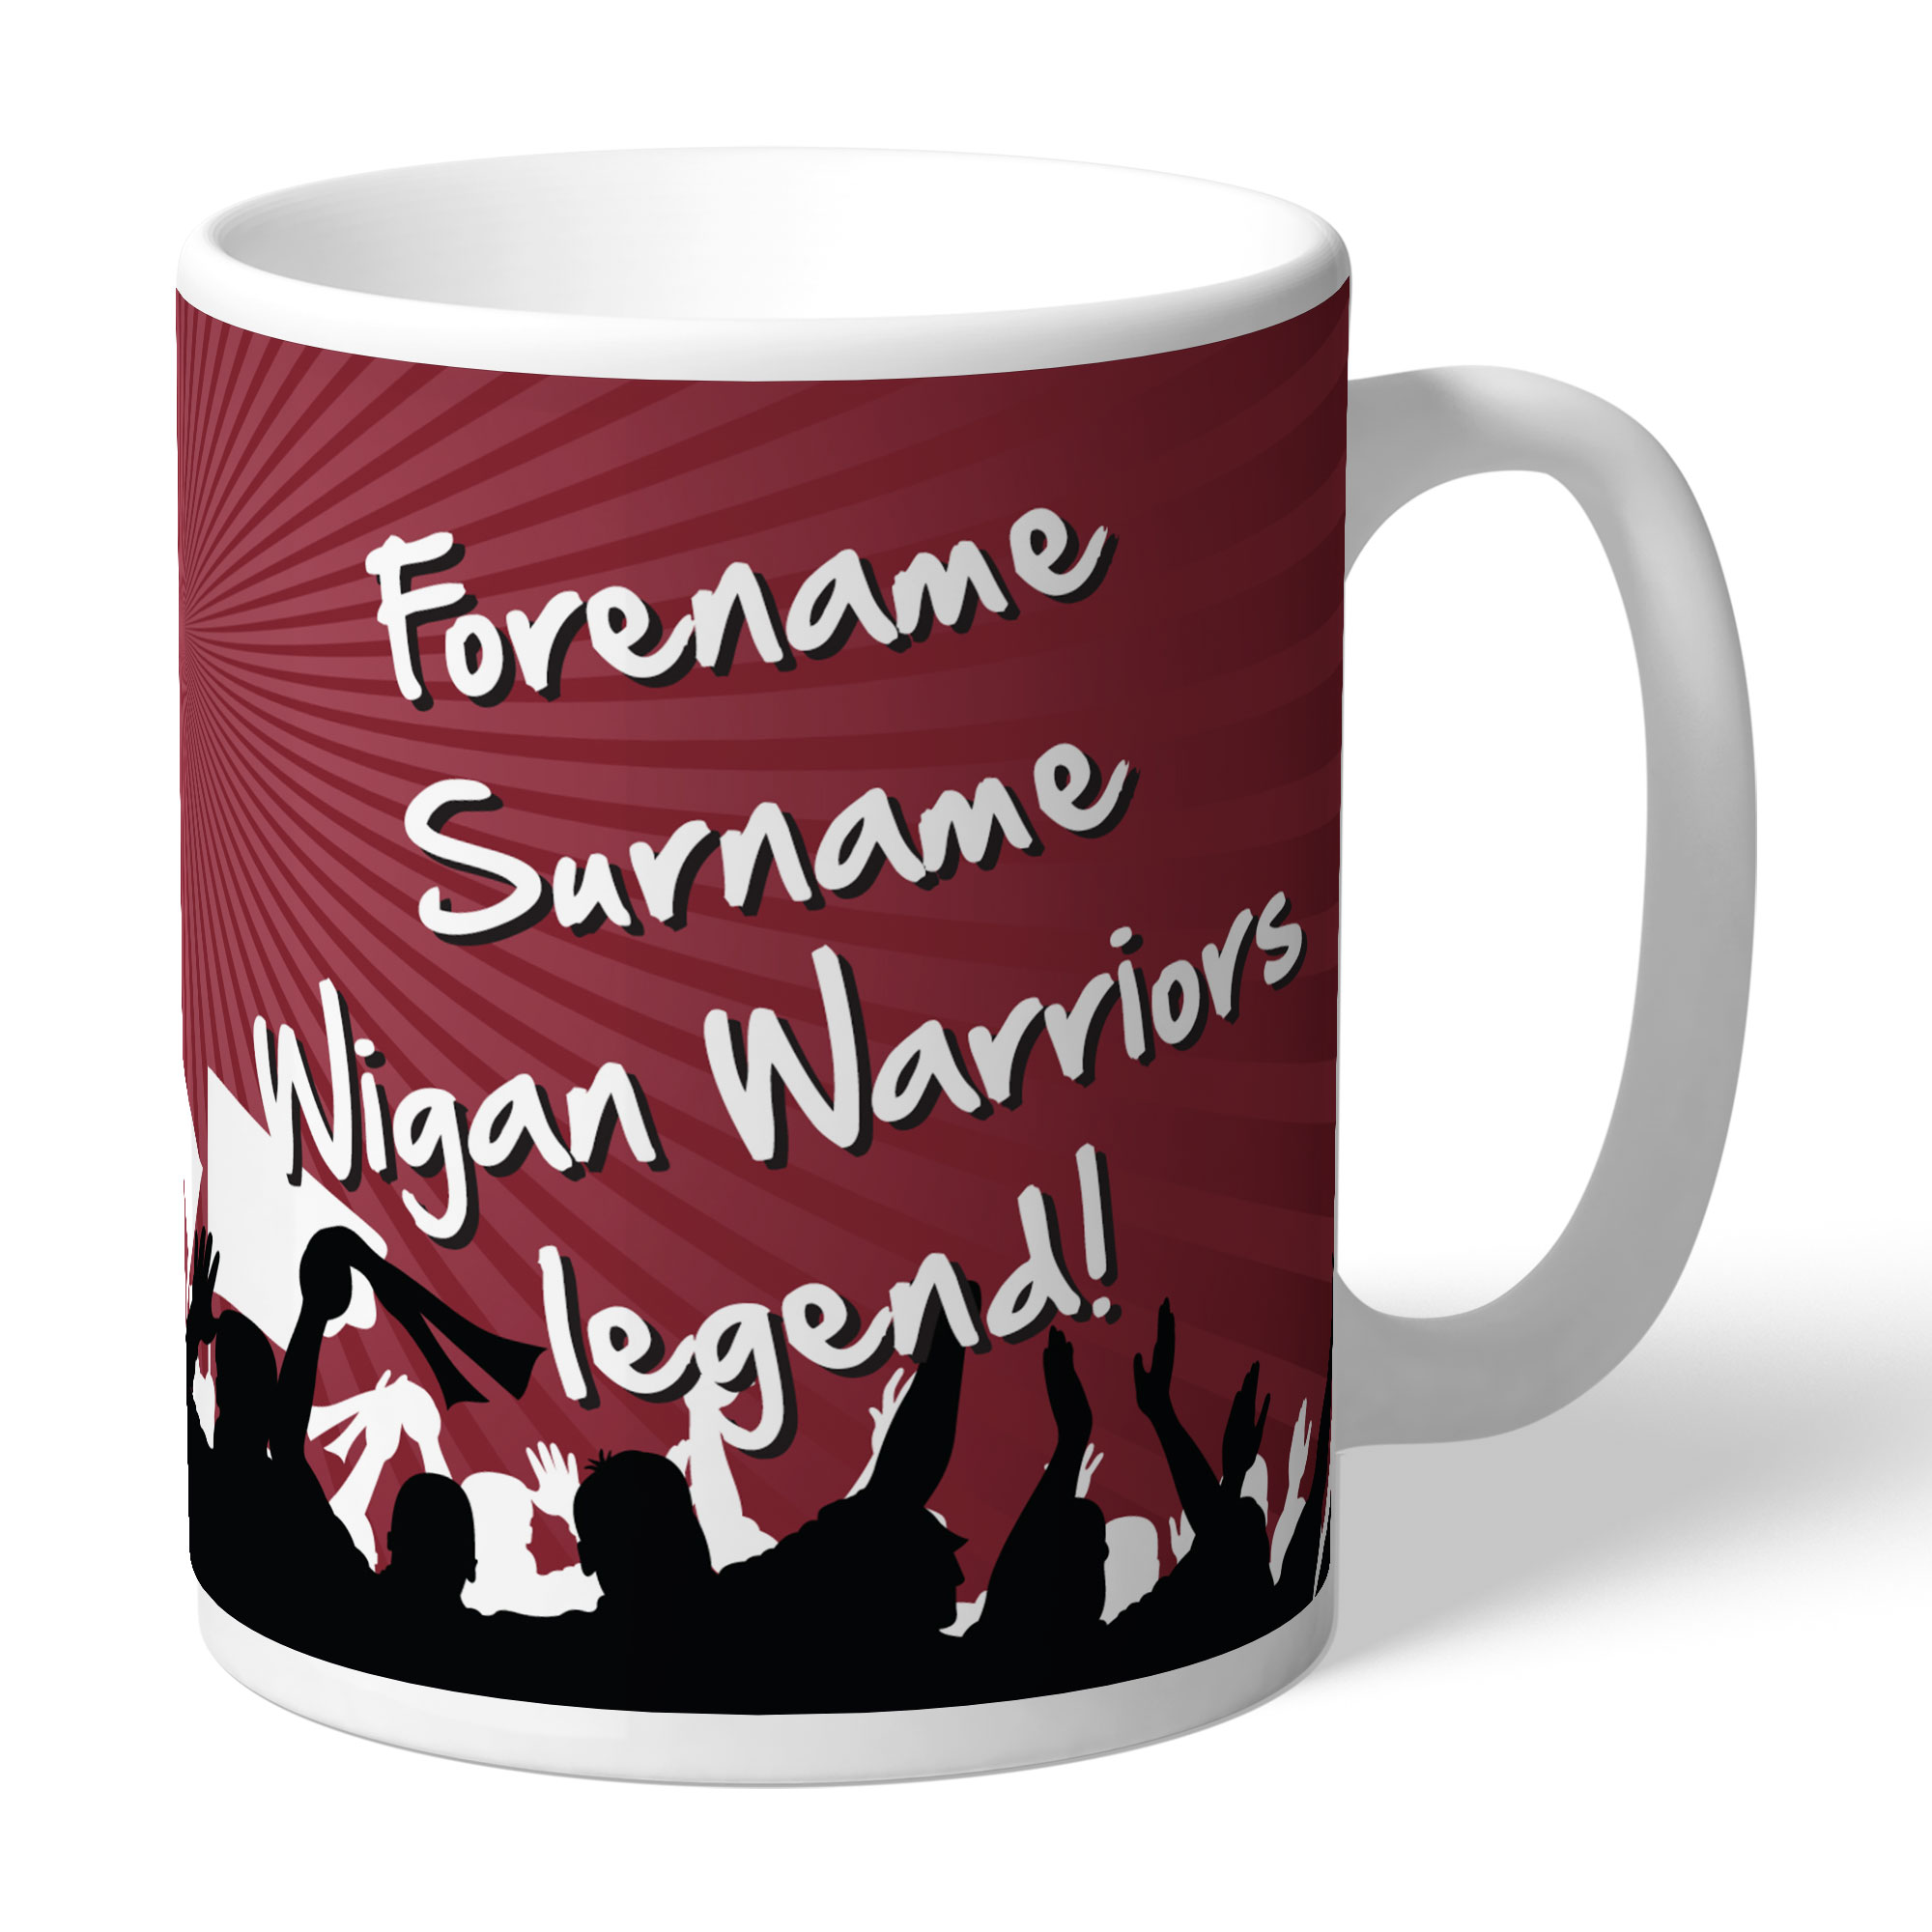 Wigan Warriors Legend Mug